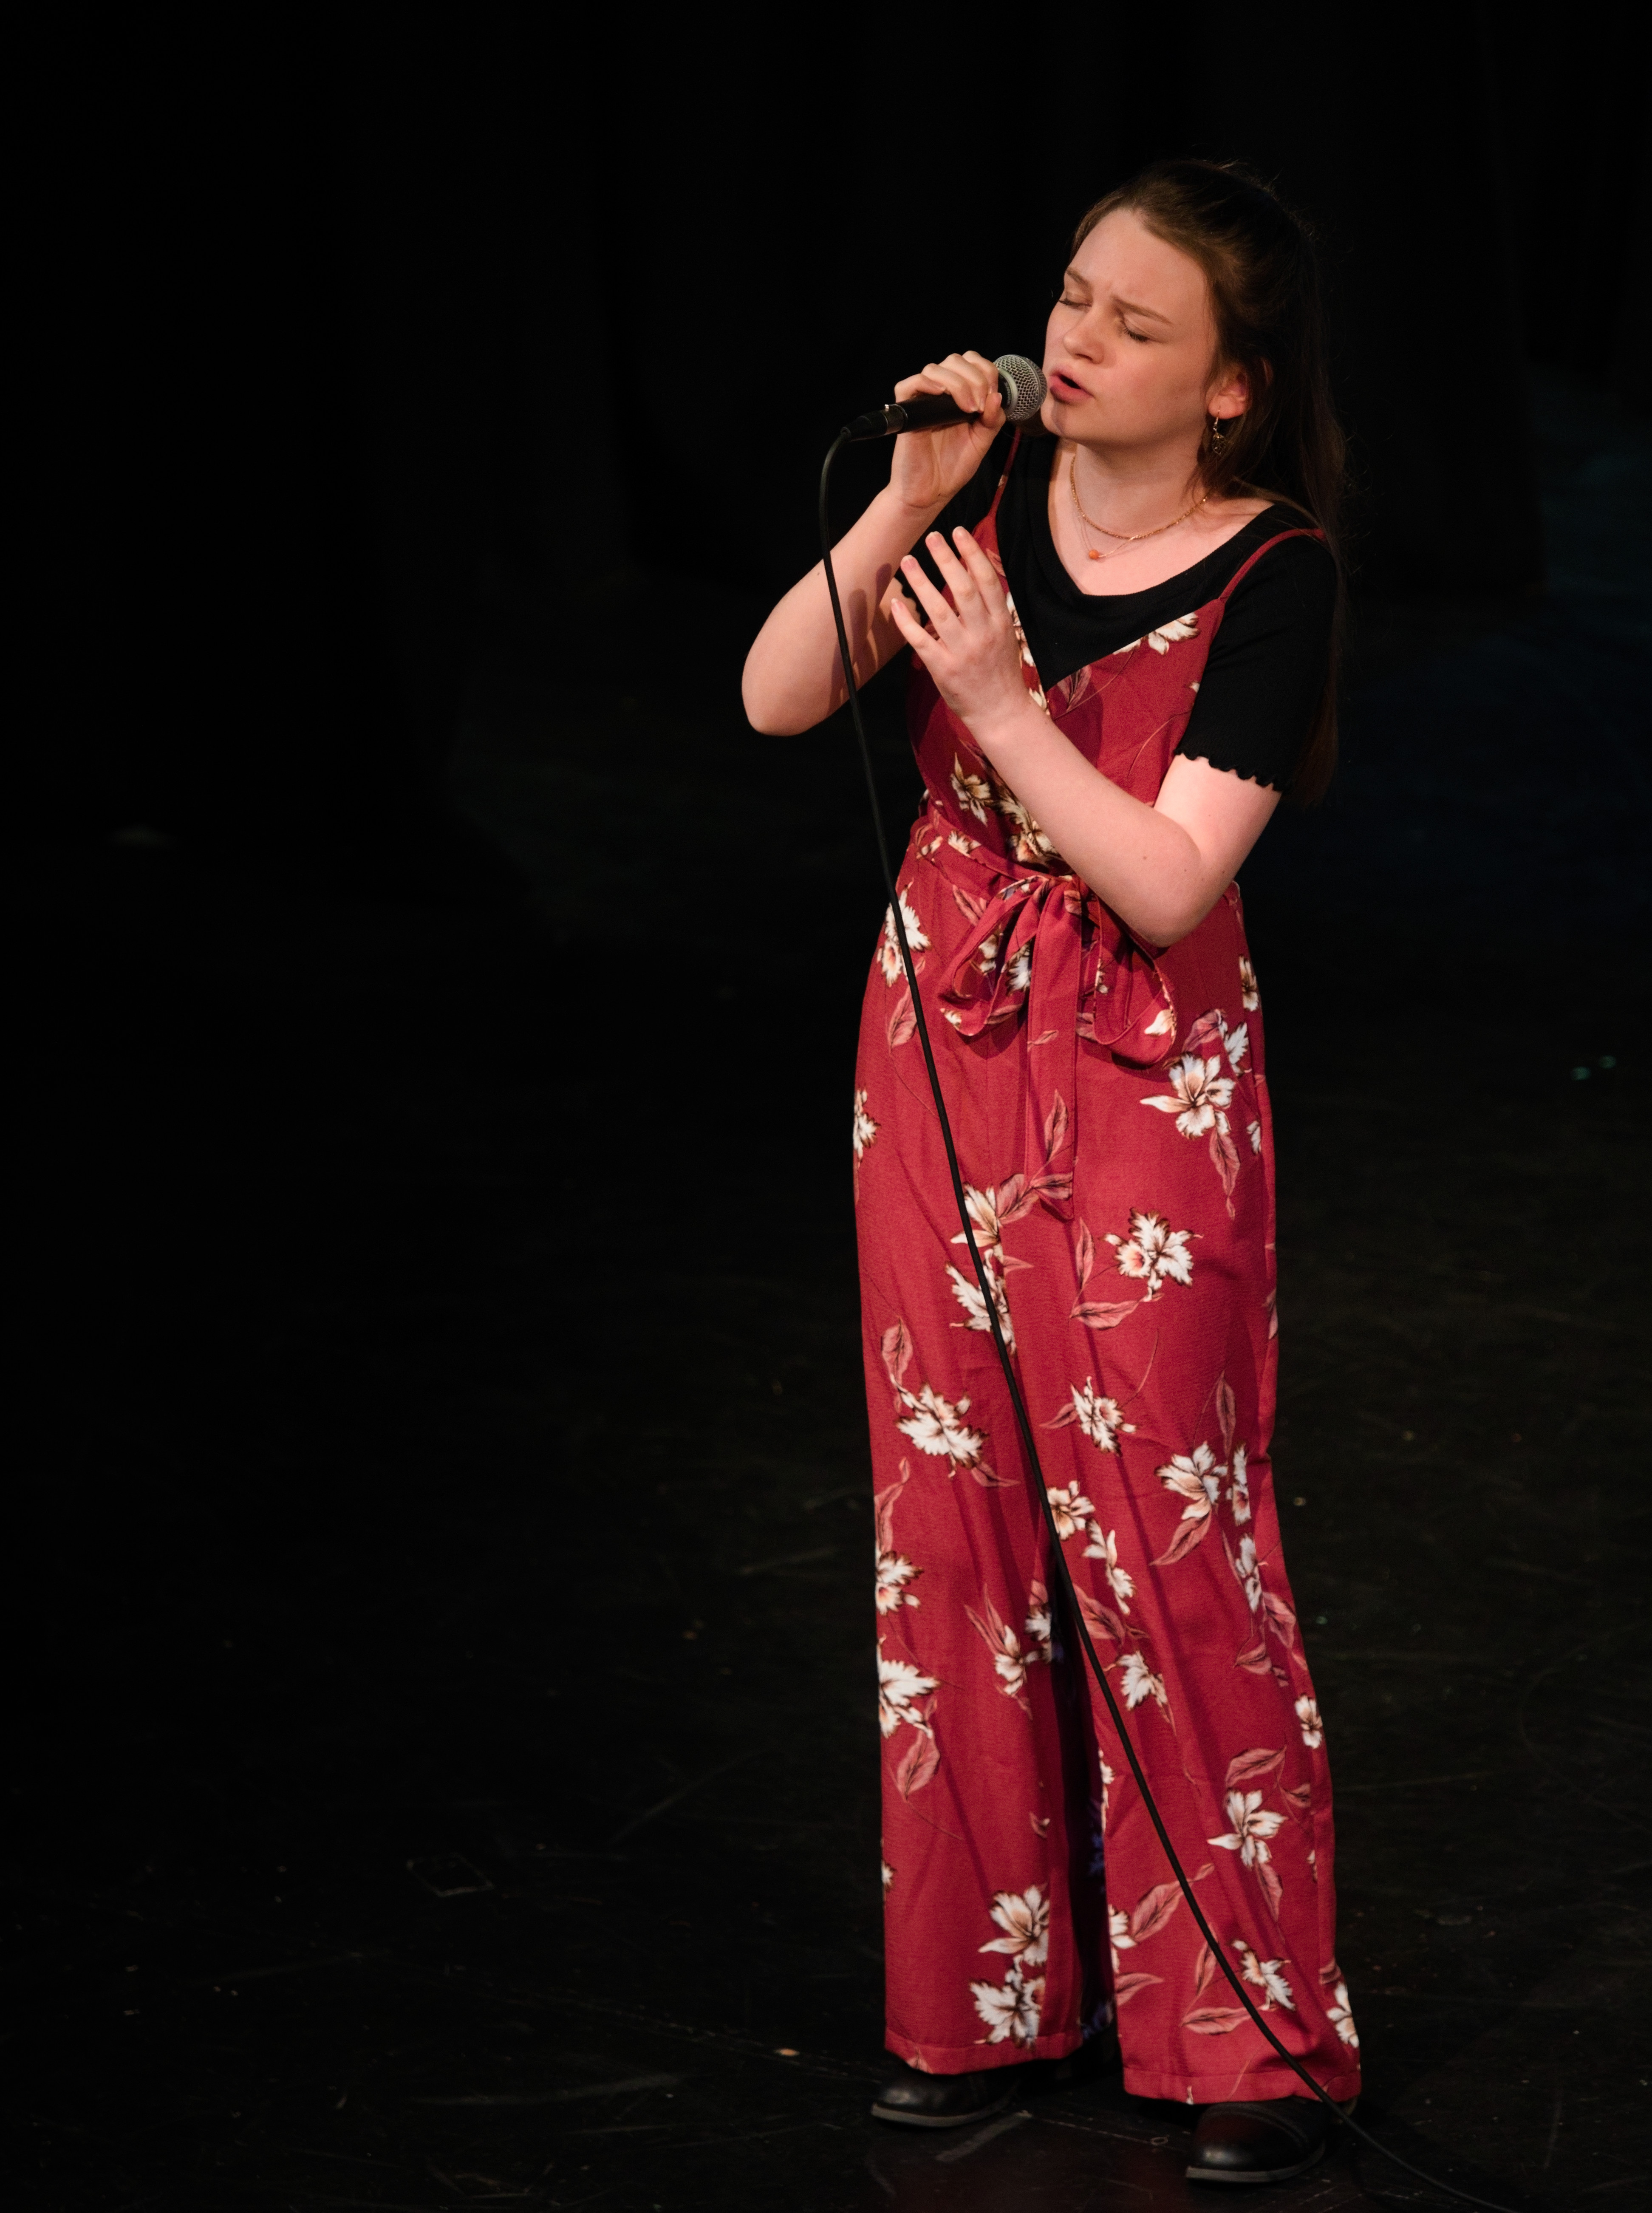 WGE Contemporary Popular Vocal Isabella Marshall Performs